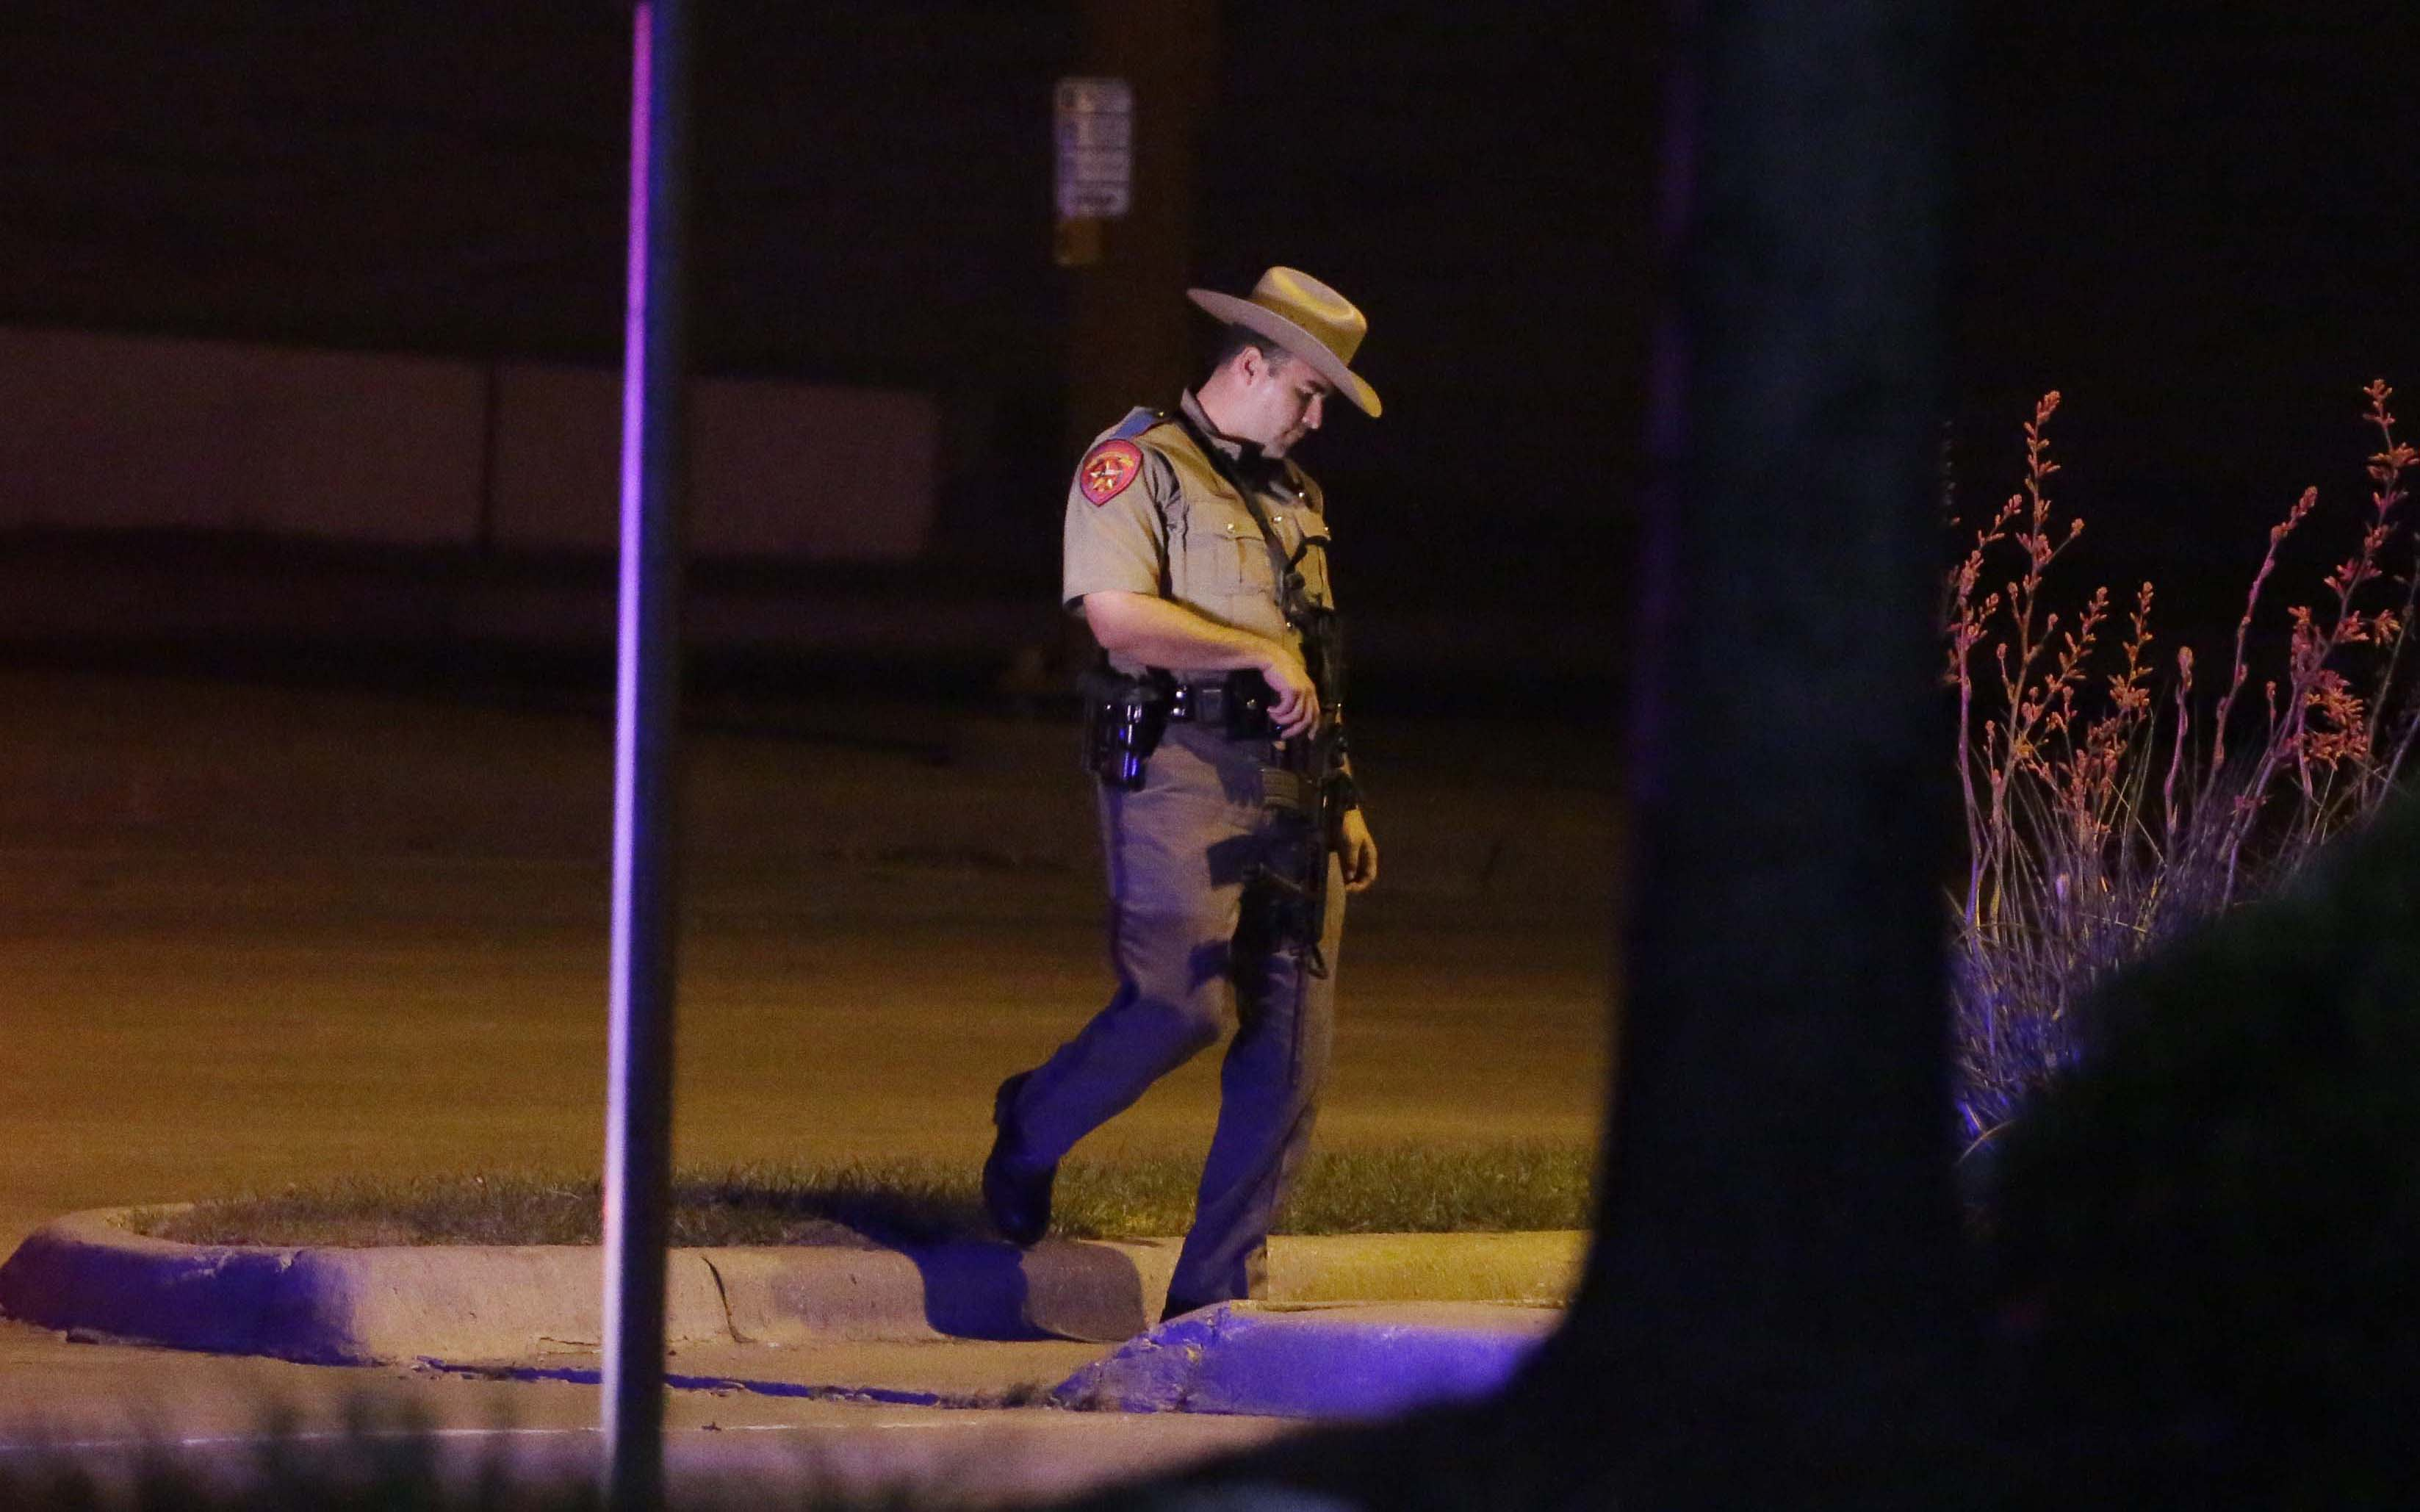 Police kill 2 gunmen outside Muhammad cartoon event in Texas